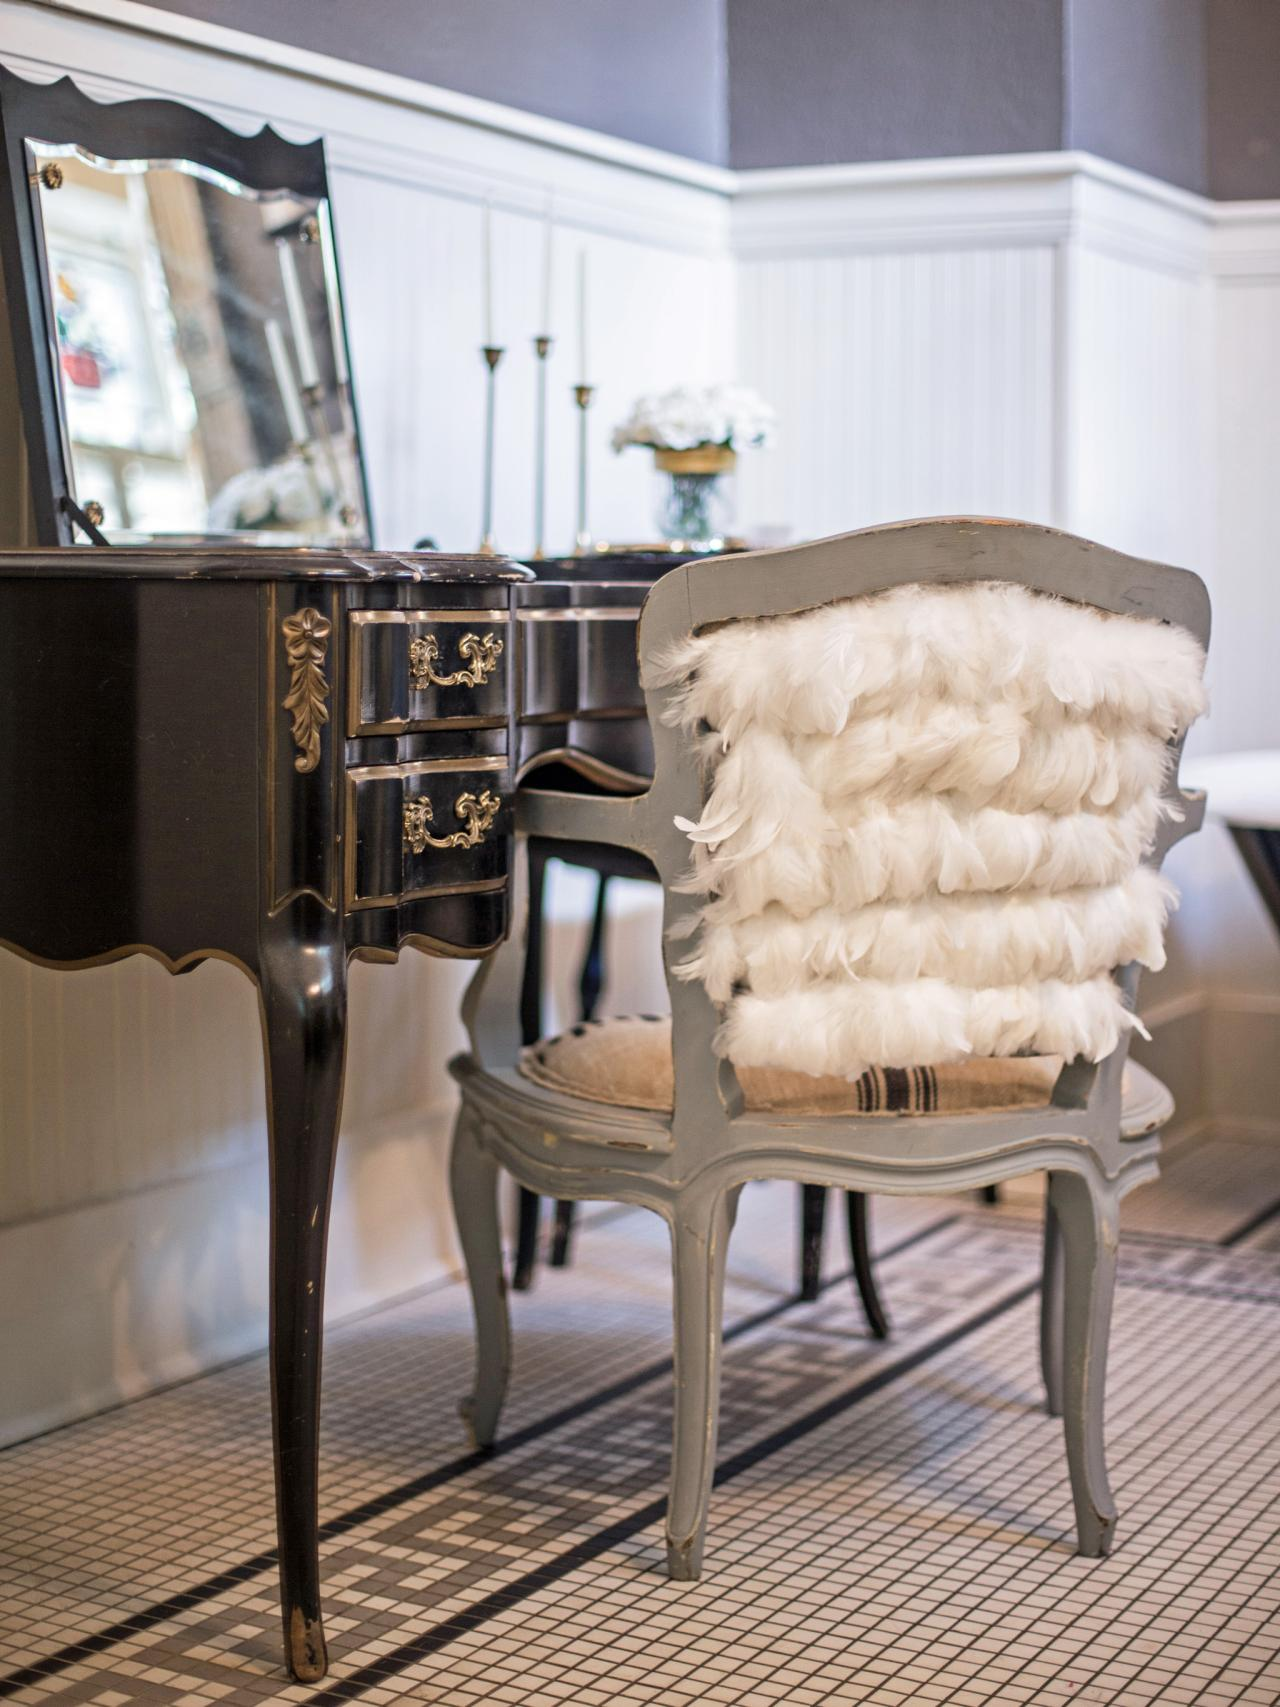 vanity chair with back Embellish a Vanity Chair With Feathers | HGTV vanity chair with back